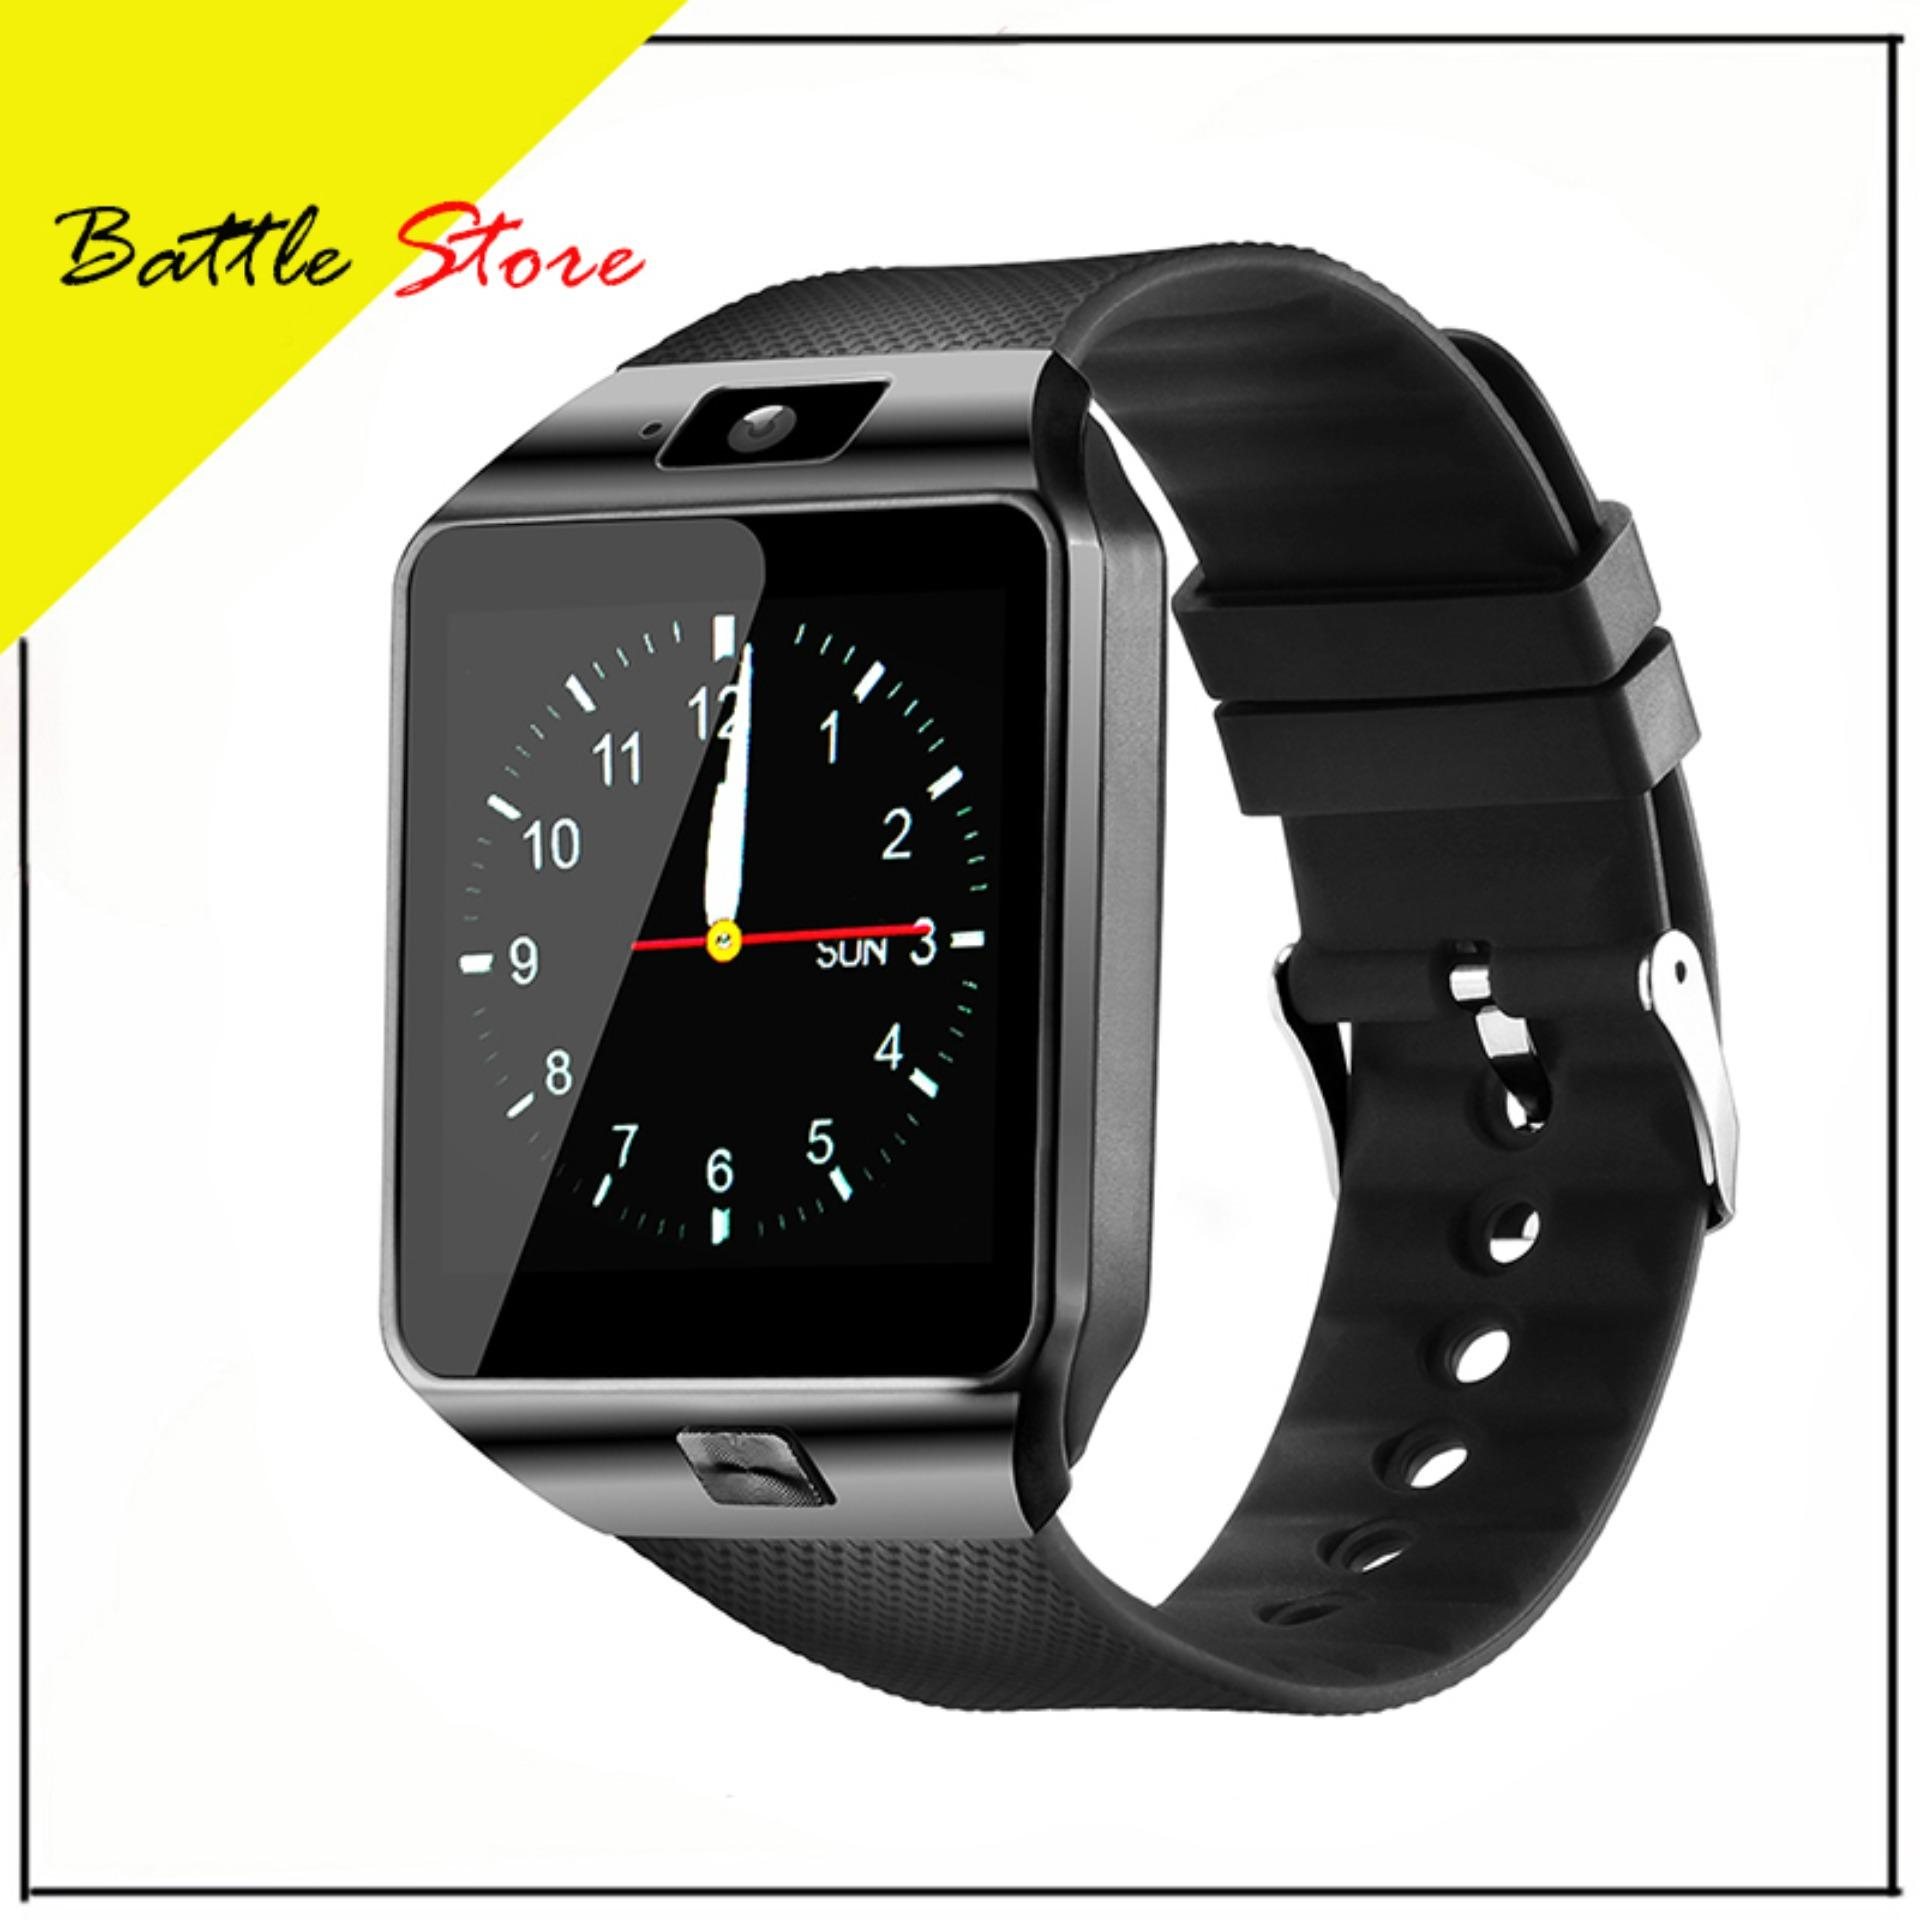 Smartwatch U9 / DZ09 / Smart Watch DZ09 Support Sim Card & Memory Card / Jam Tangan Android - Black